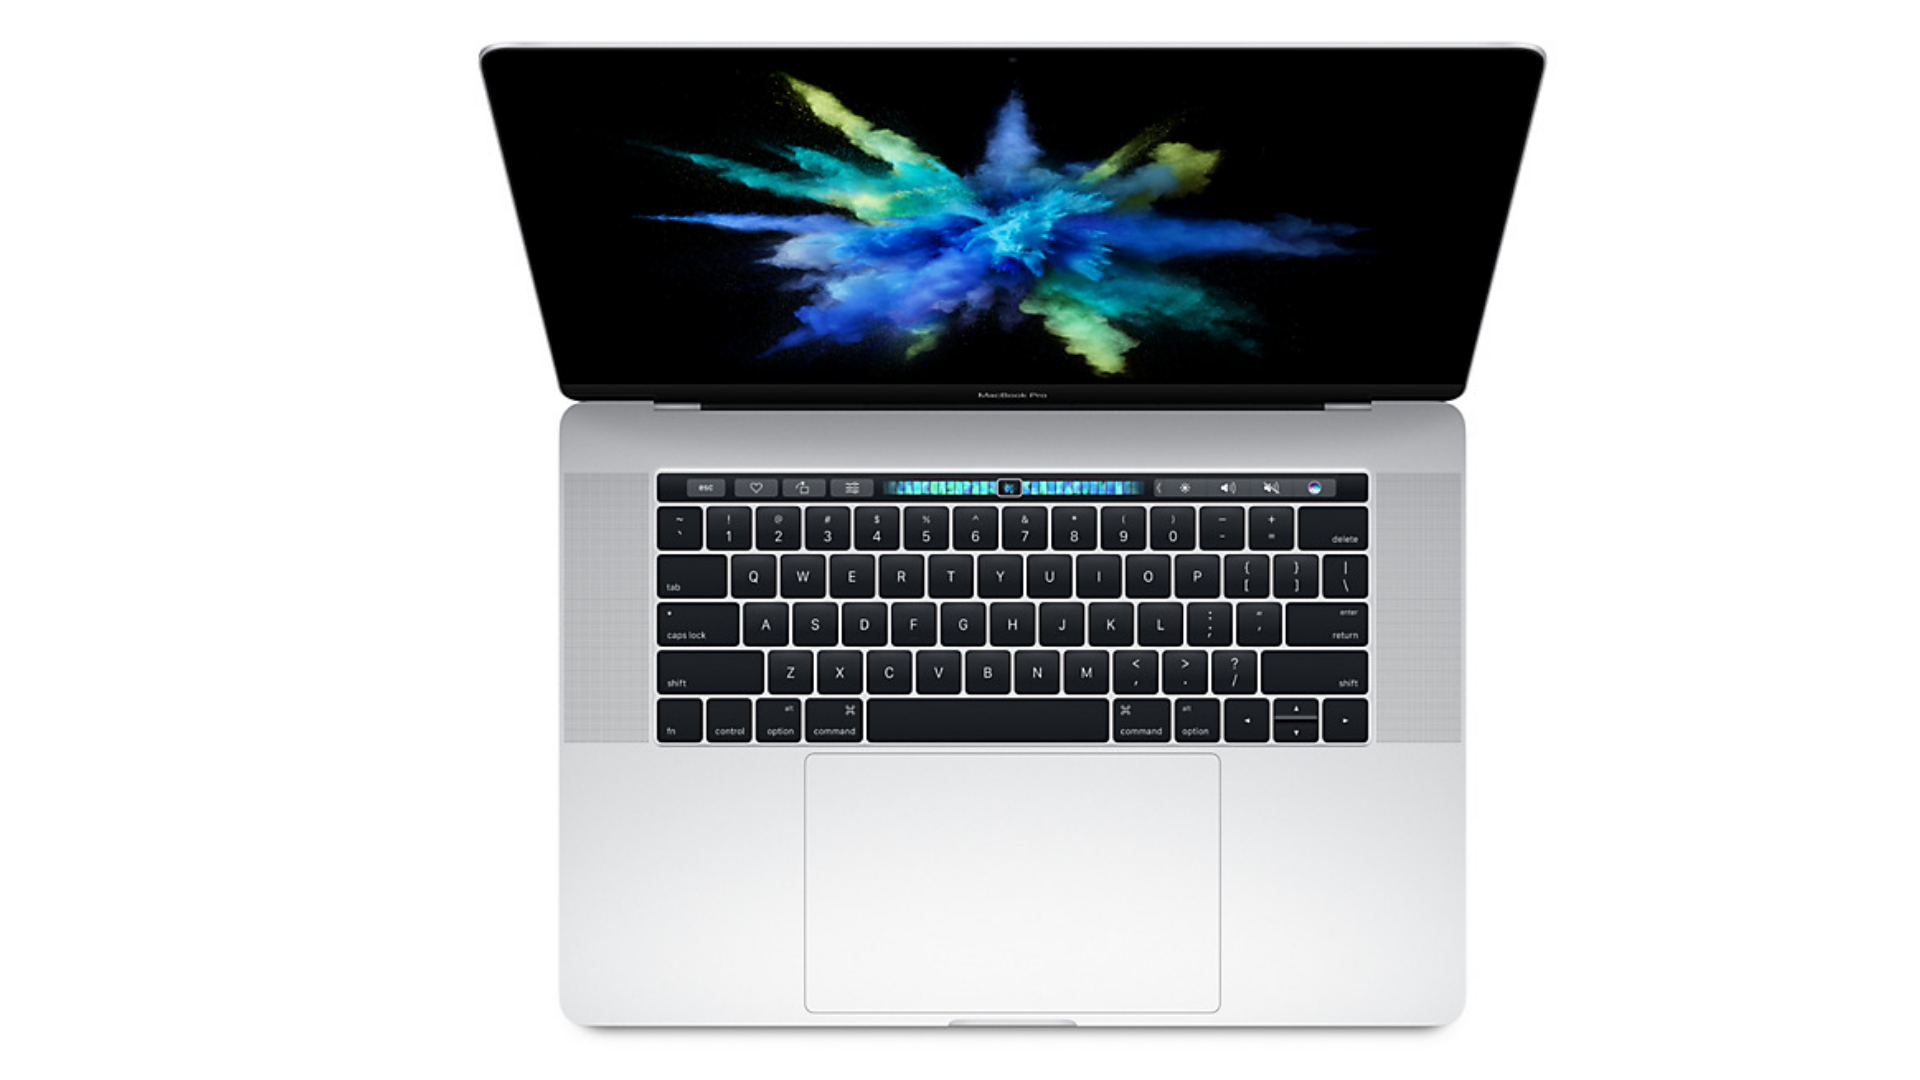 The best cheap MacBook deals on Amazon Prime Day 2018 1531341524_662_the-best-cheap-macbook-deals-on-amazon-prime-day-2018